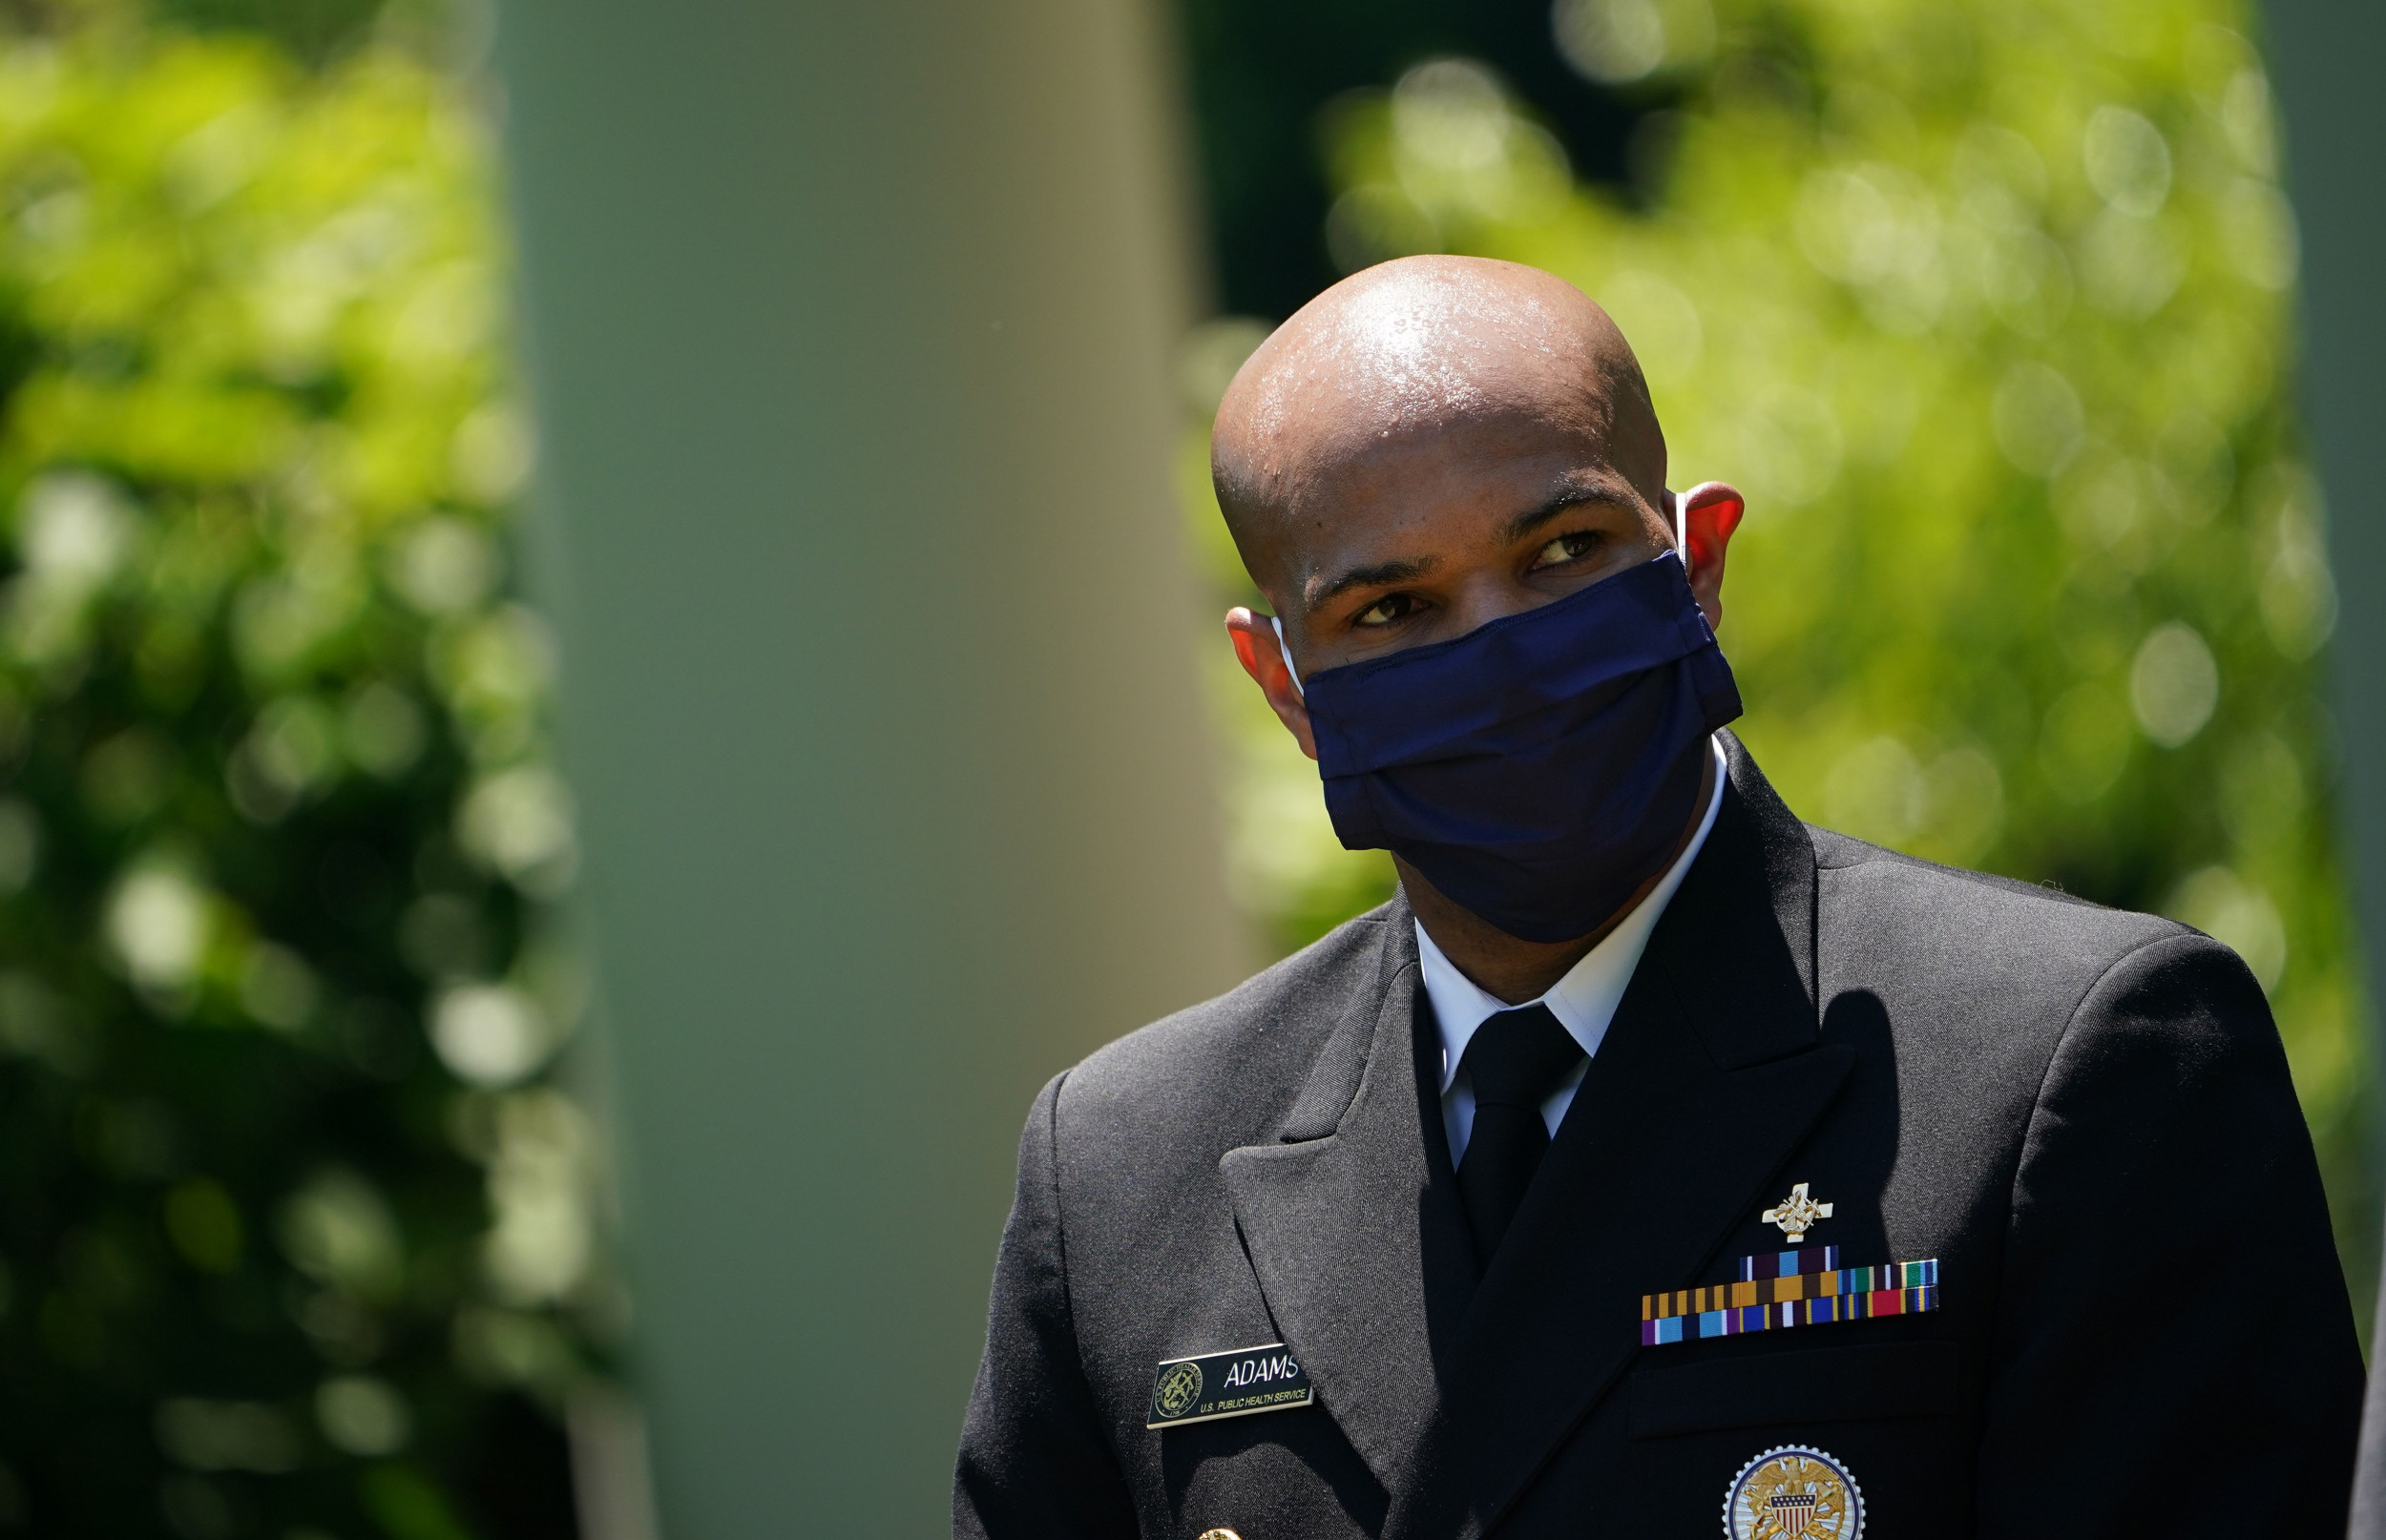 """Surgeon General says if federal govt. makes face masks mandatory, many people will """"rebel"""""""